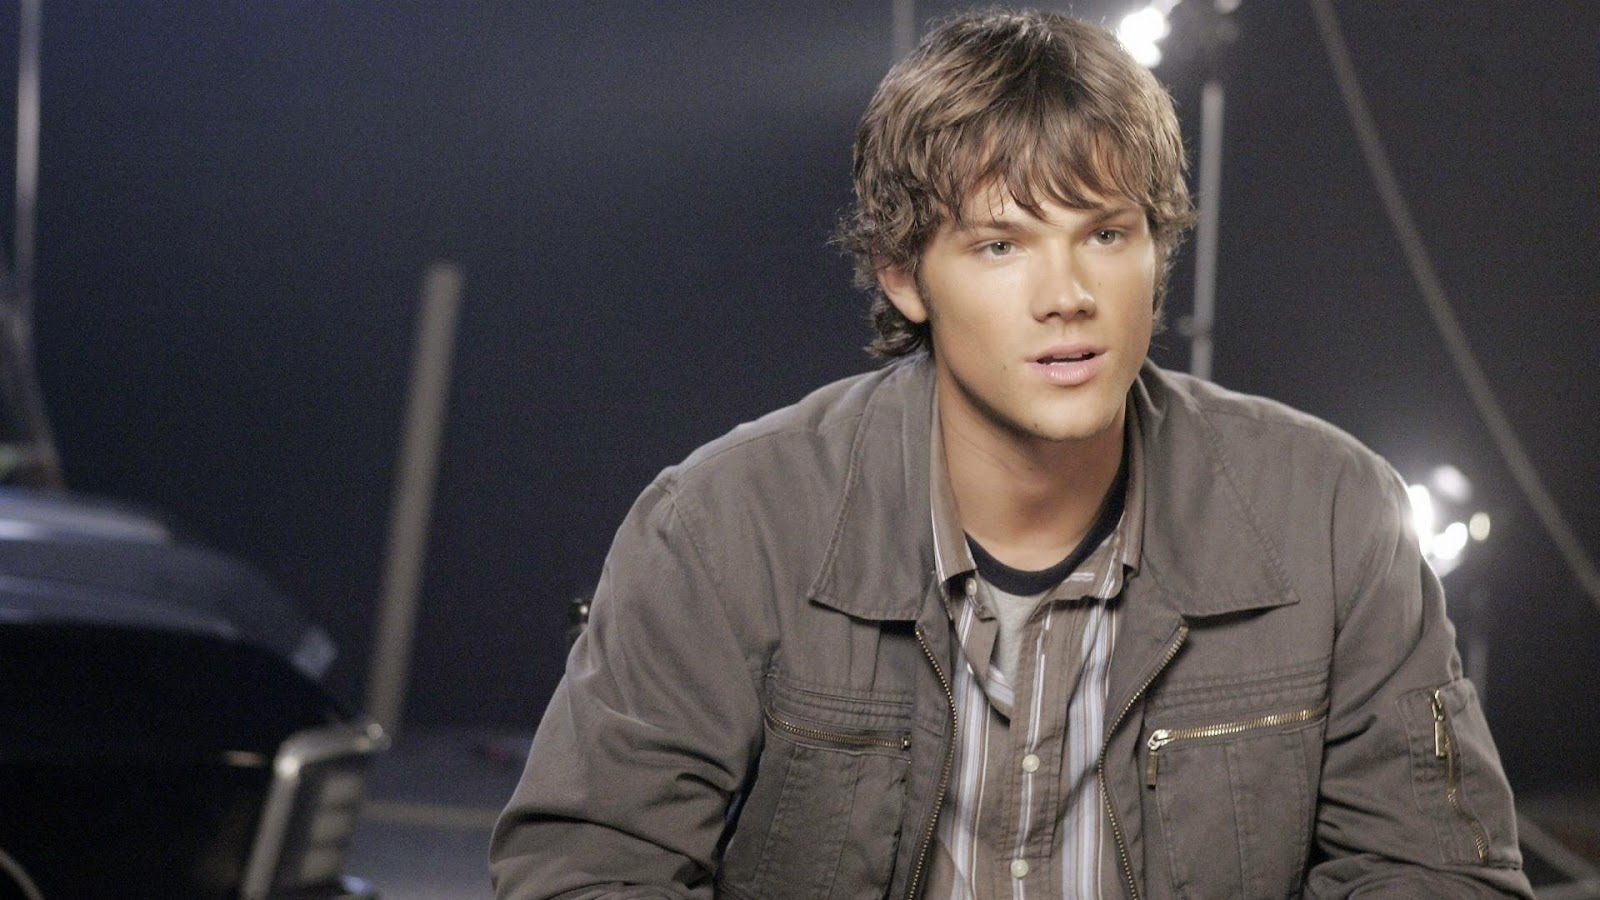 Jared padalecki quotes - 27 I Had A Nightmare About Being On A Cruise Ship And The Ship Going Down It Was An Arduous Process Of The Ship Going Down And We Knew It Was Going